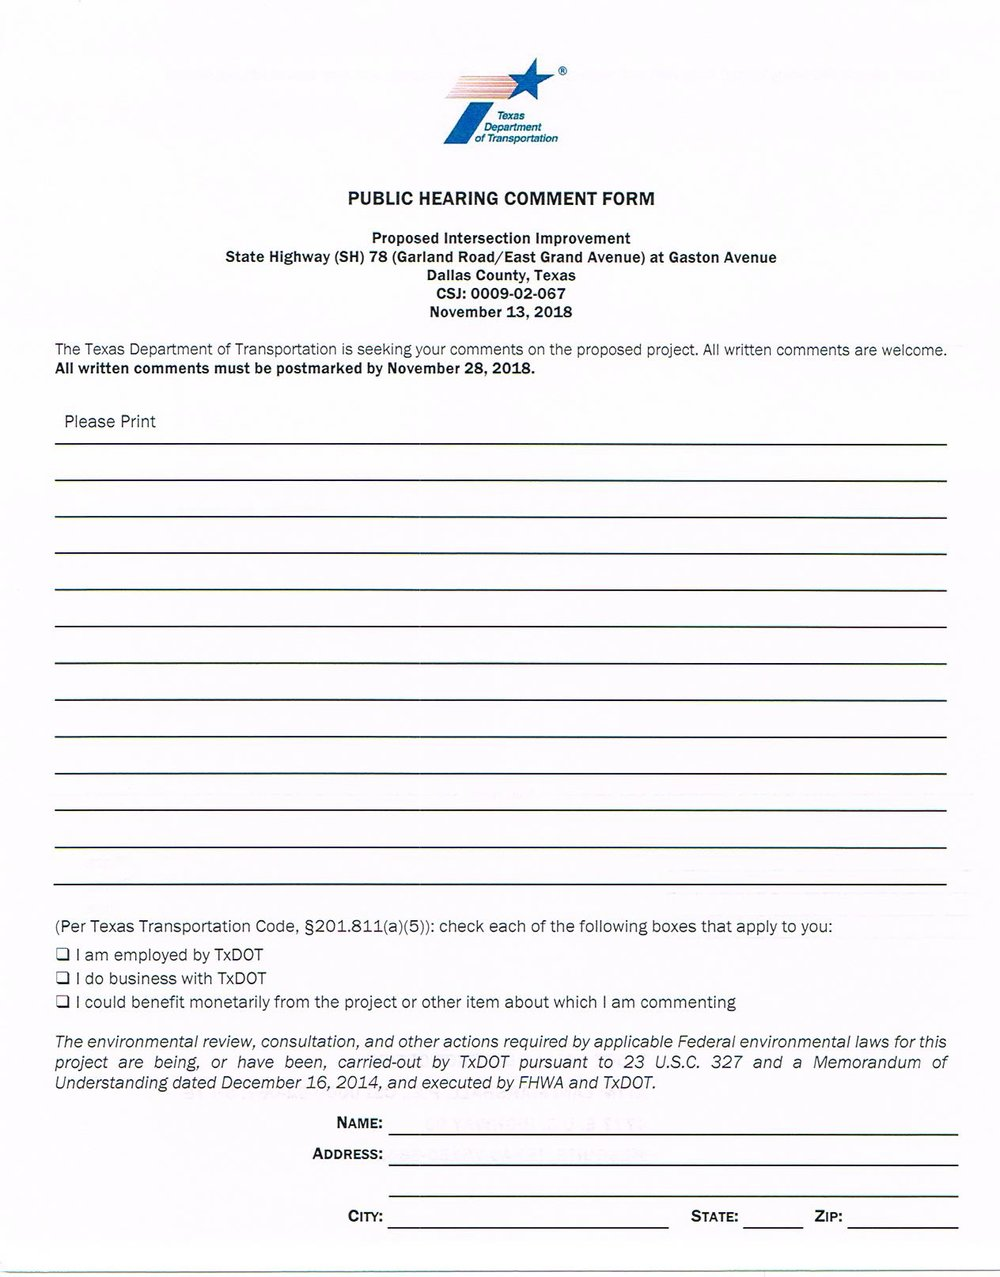 Blank Public Hearing Comment Form